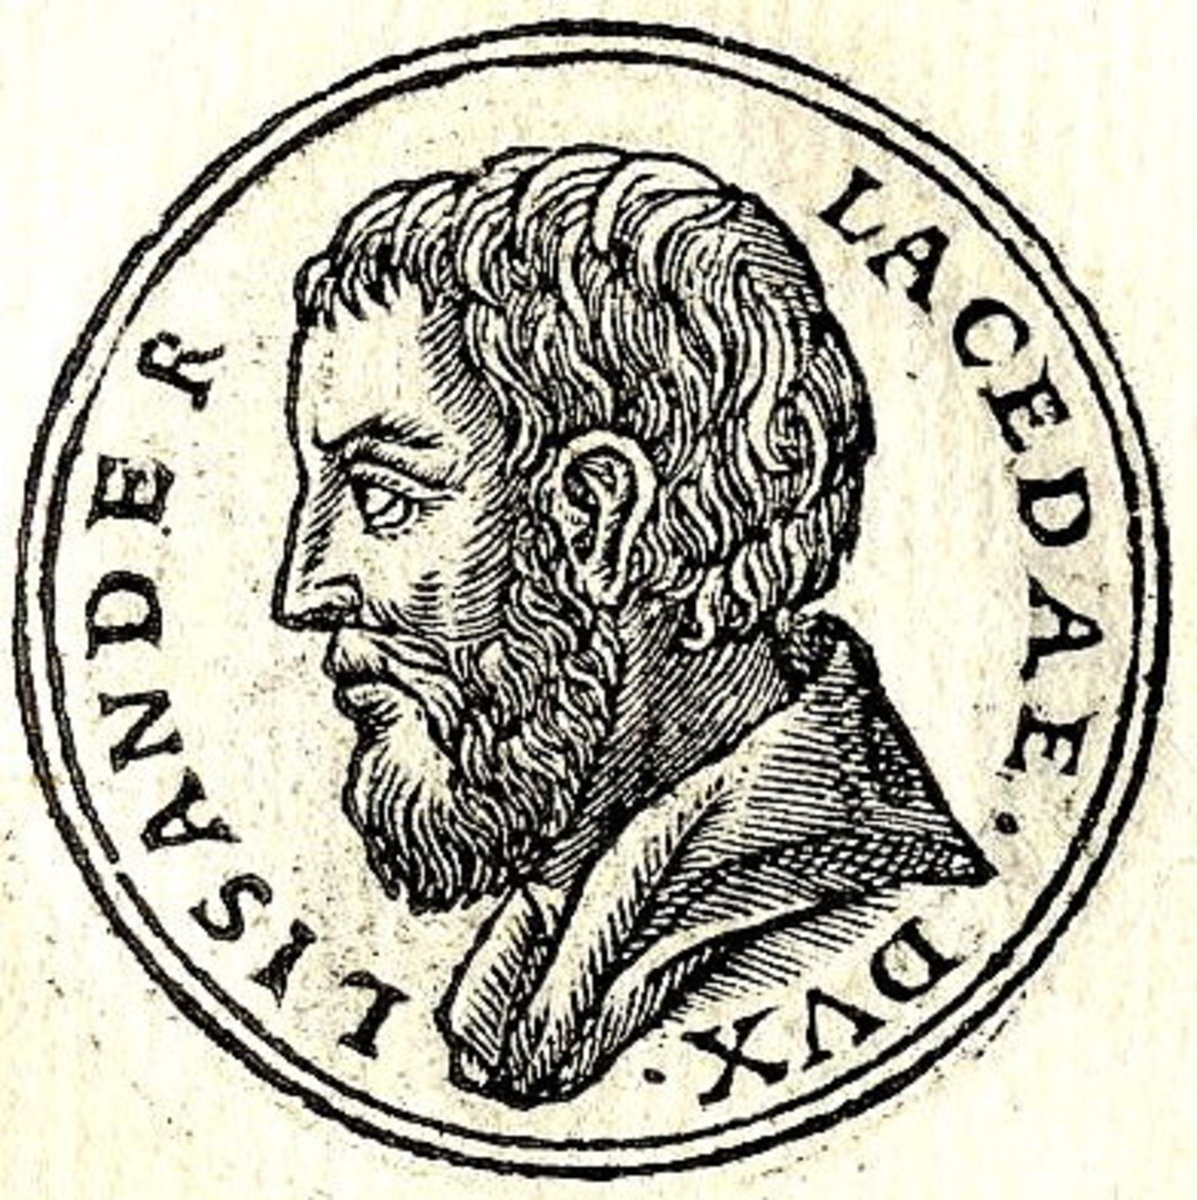 A 16th Century illustration of Lysander, one of Sparta's finest leaders.